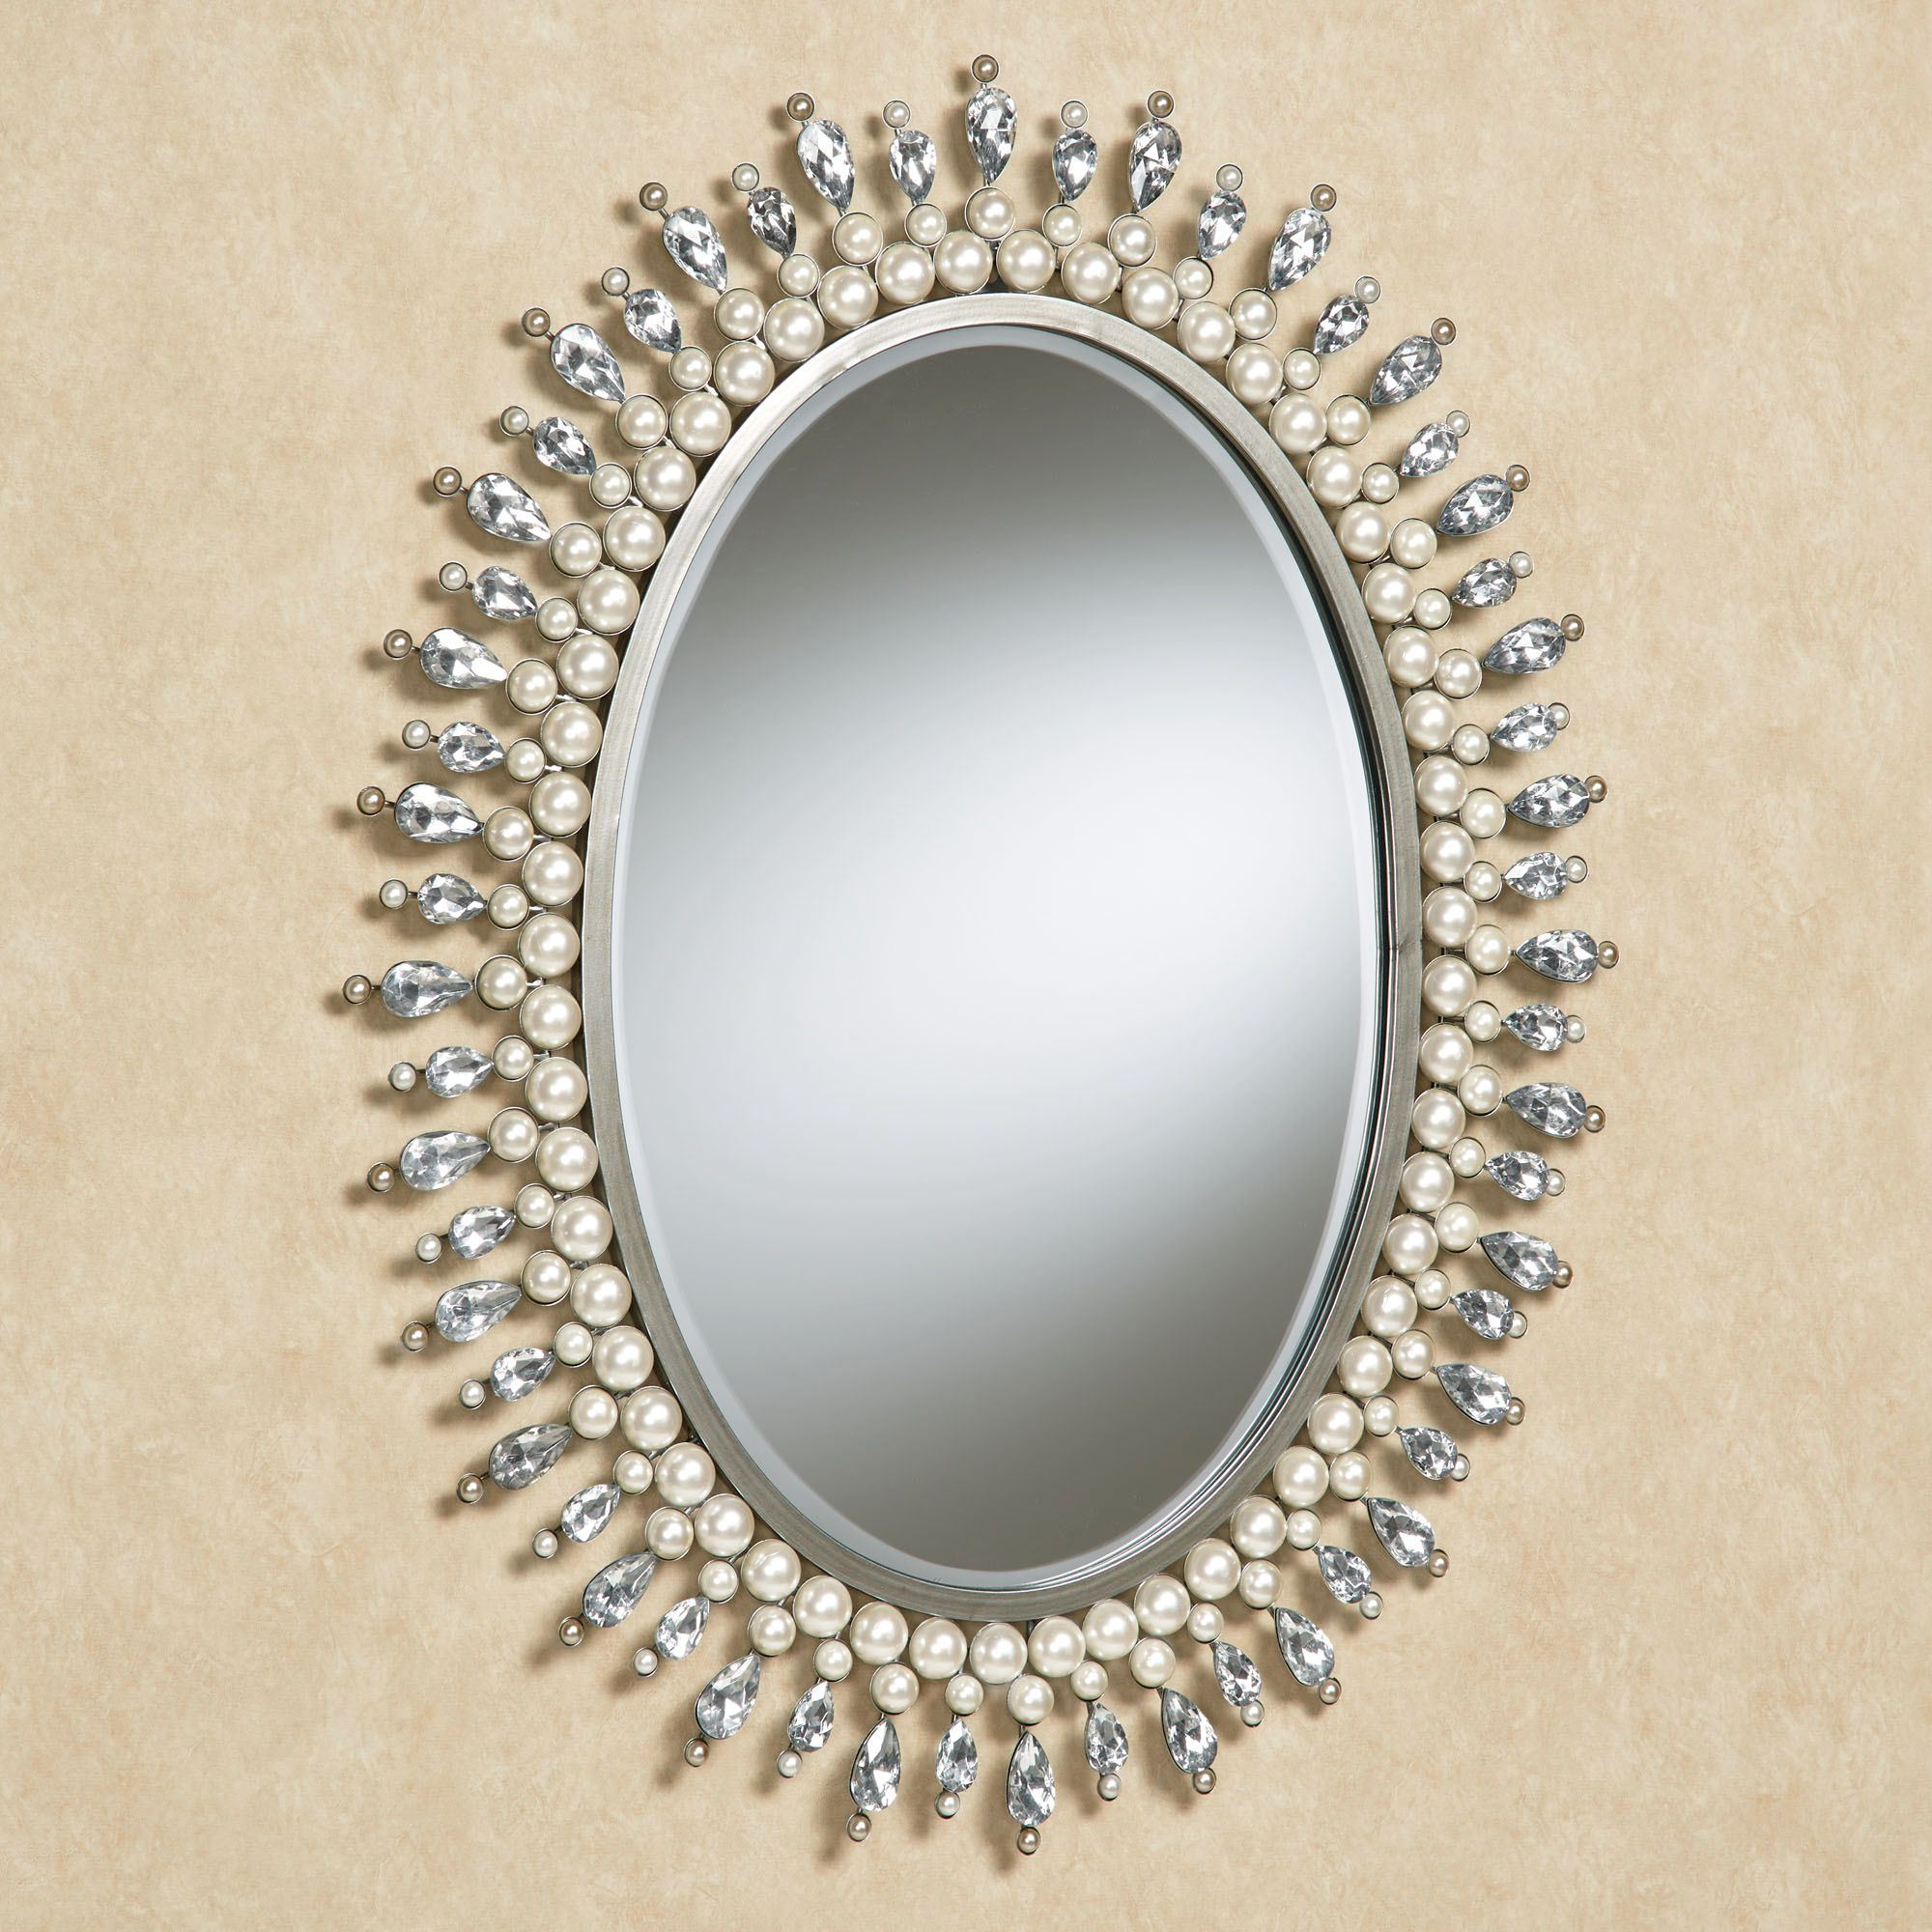 Oval Wall Mirrors Regarding Famous Giselle Pearl And Gem Oval Wall Mirror (View 5 of 20)